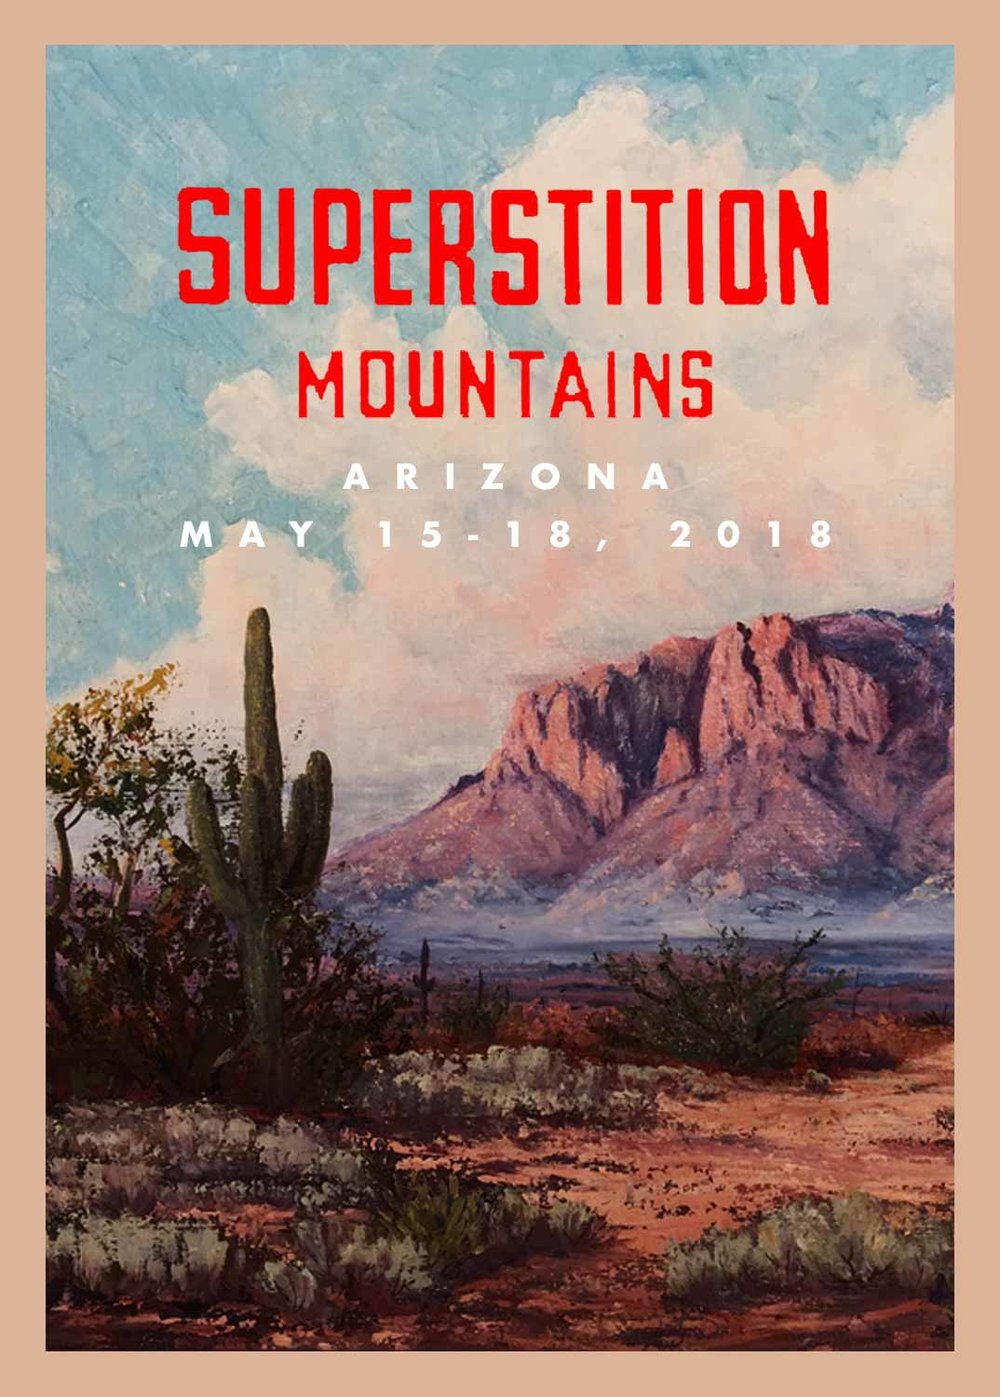 SUPERSTITION_TITLEPOSTER.jpg